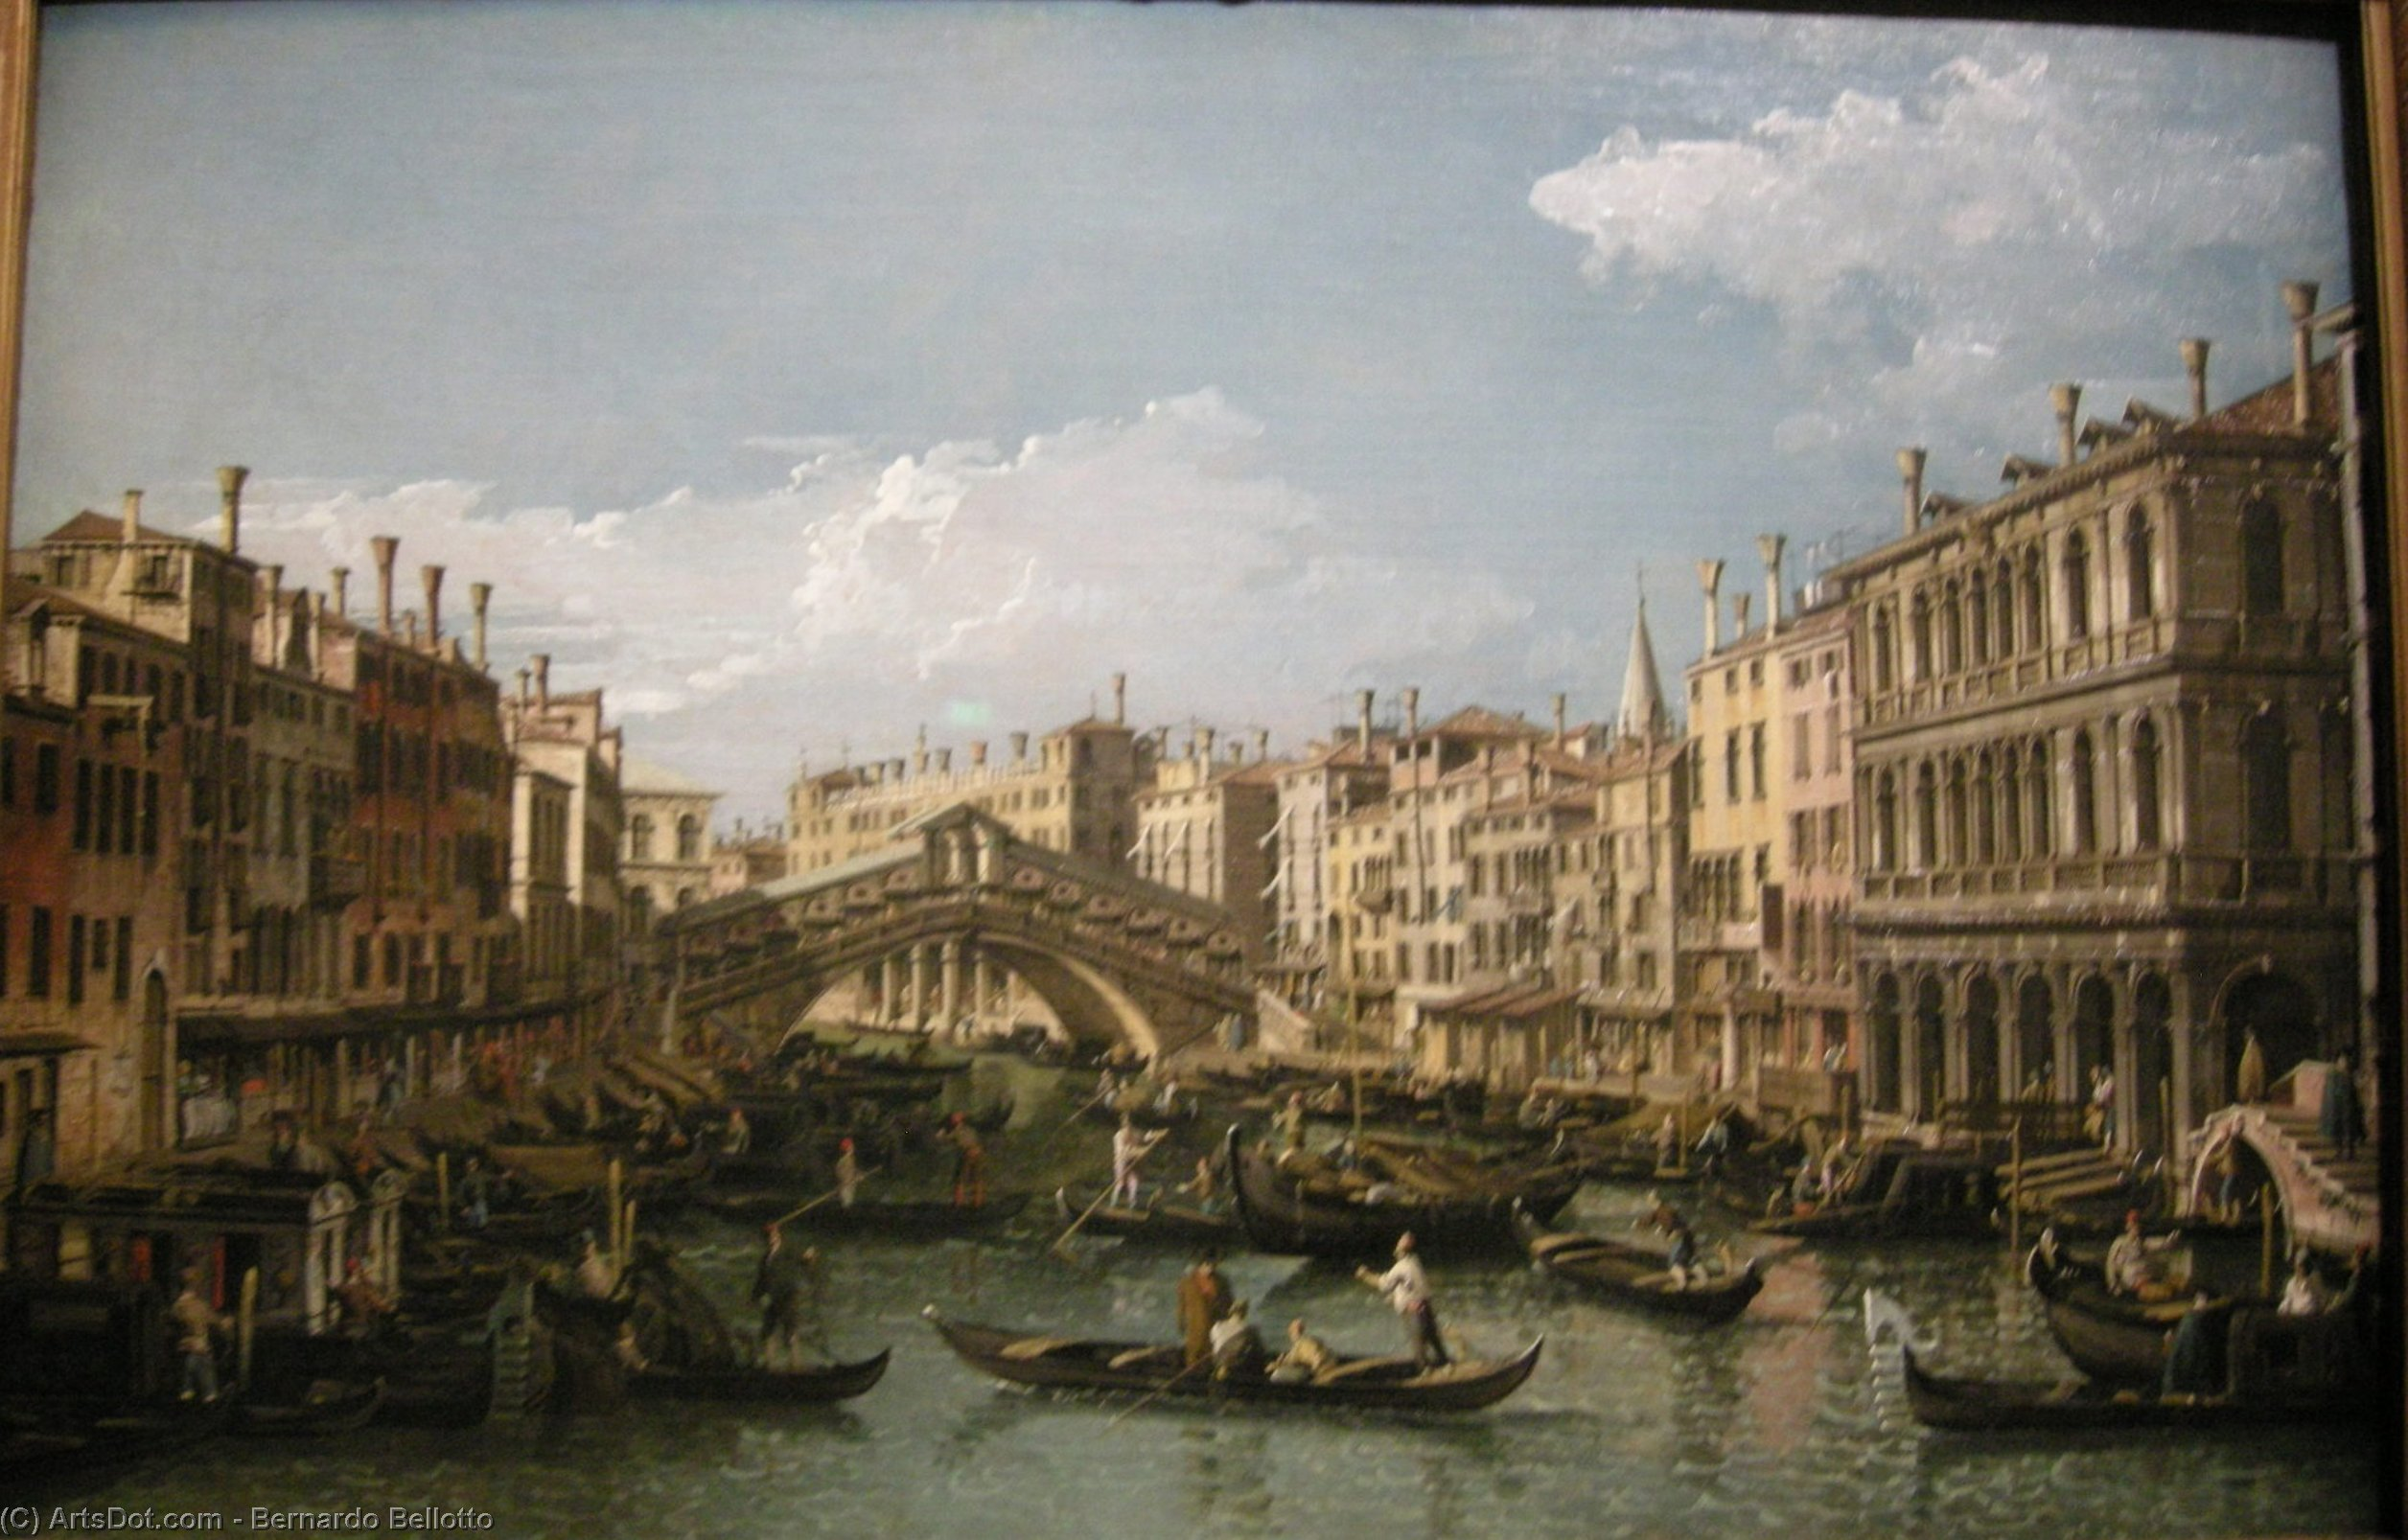 Wikioo.org - The Encyclopedia of Fine Arts - Painting, Artwork by Bernardo Bellotto - Grand canal, view from north